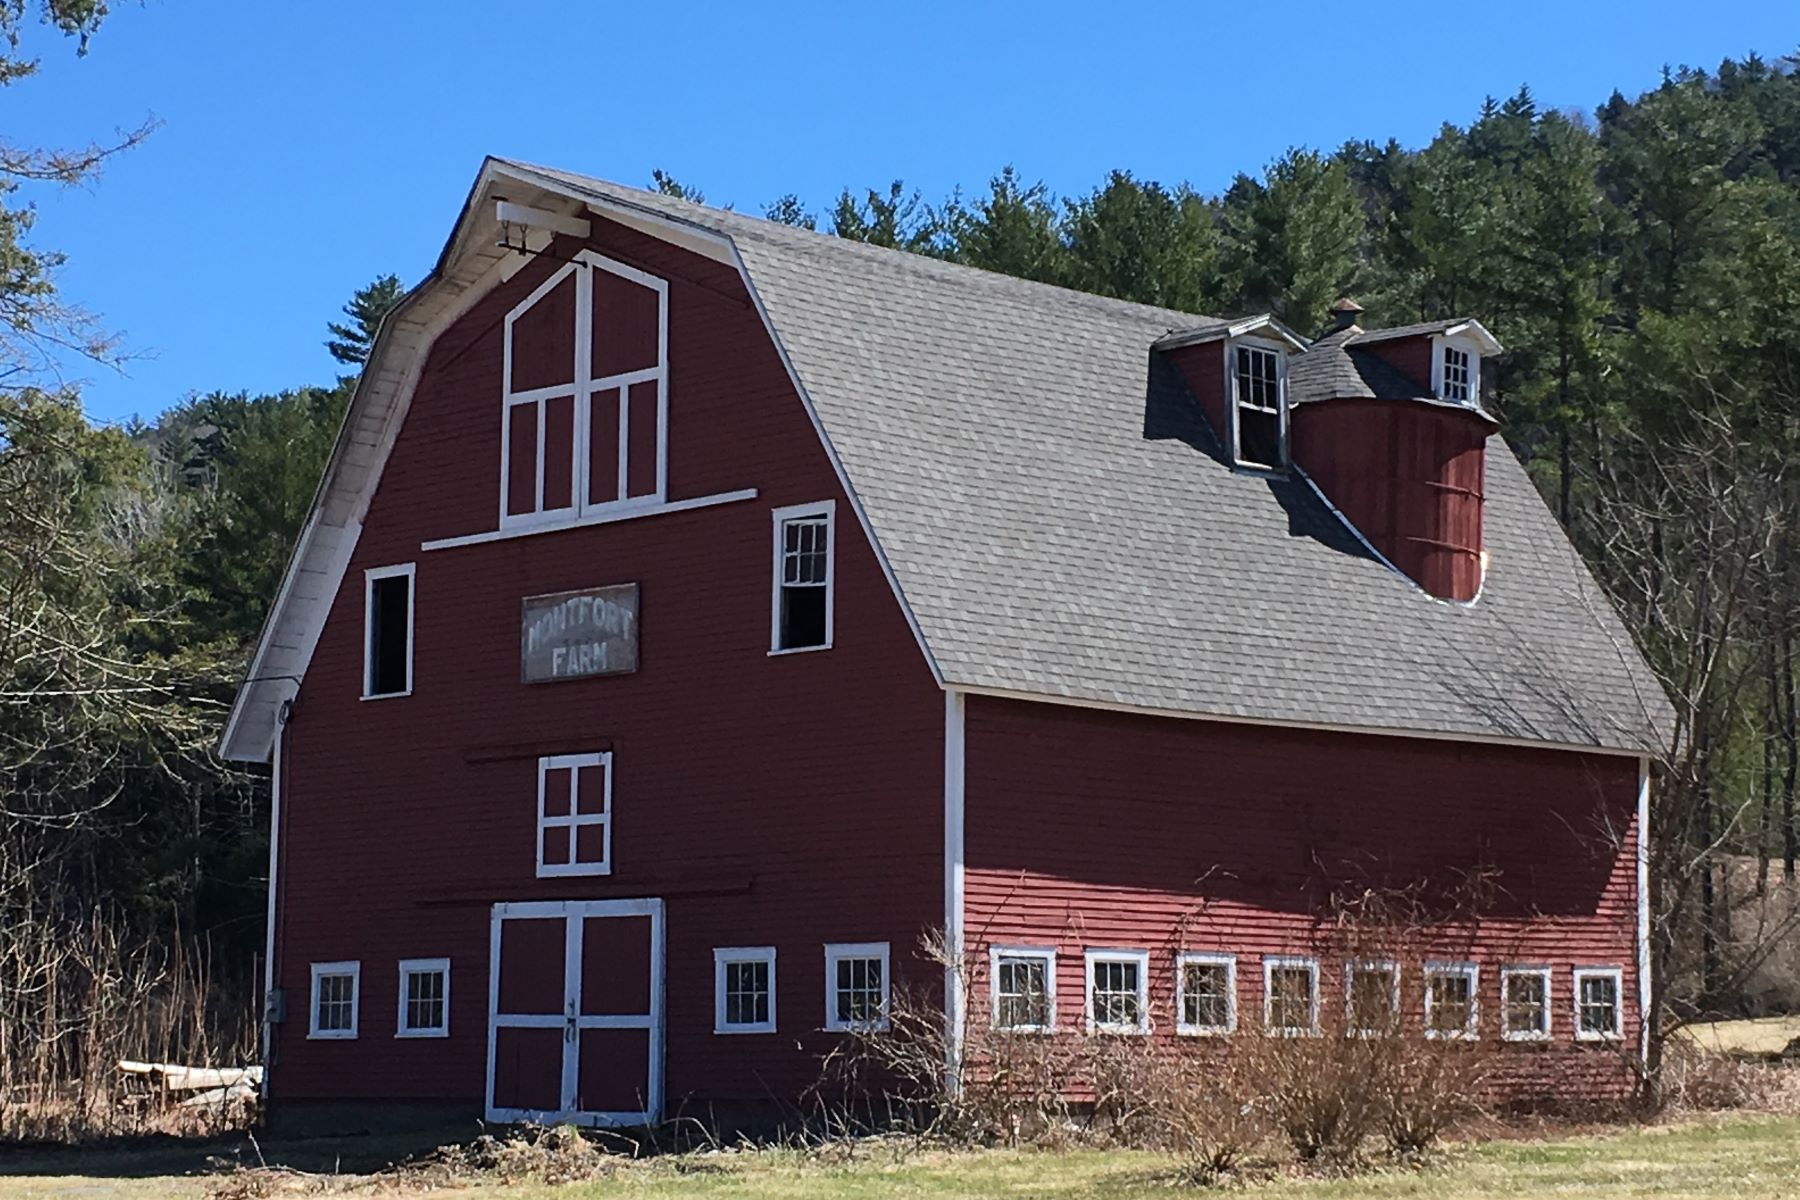 Land for Sale at Acre with Barn in Orford 00A Nh Route 10 #1 Orford, New Hampshire 03777 United States